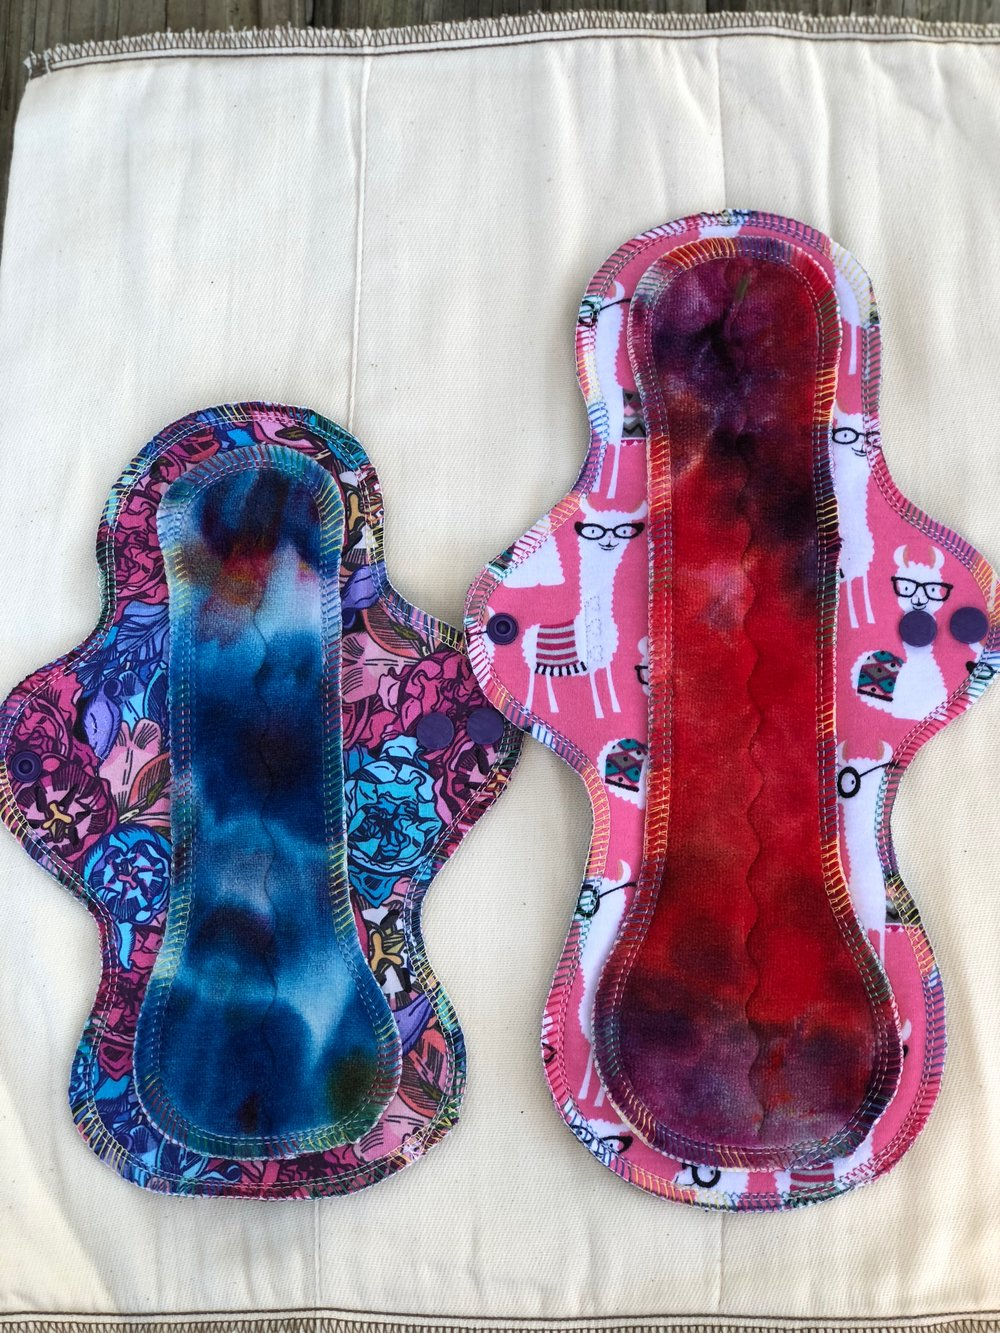 Cloth Menstrual Pads Size Comparison.jpeg